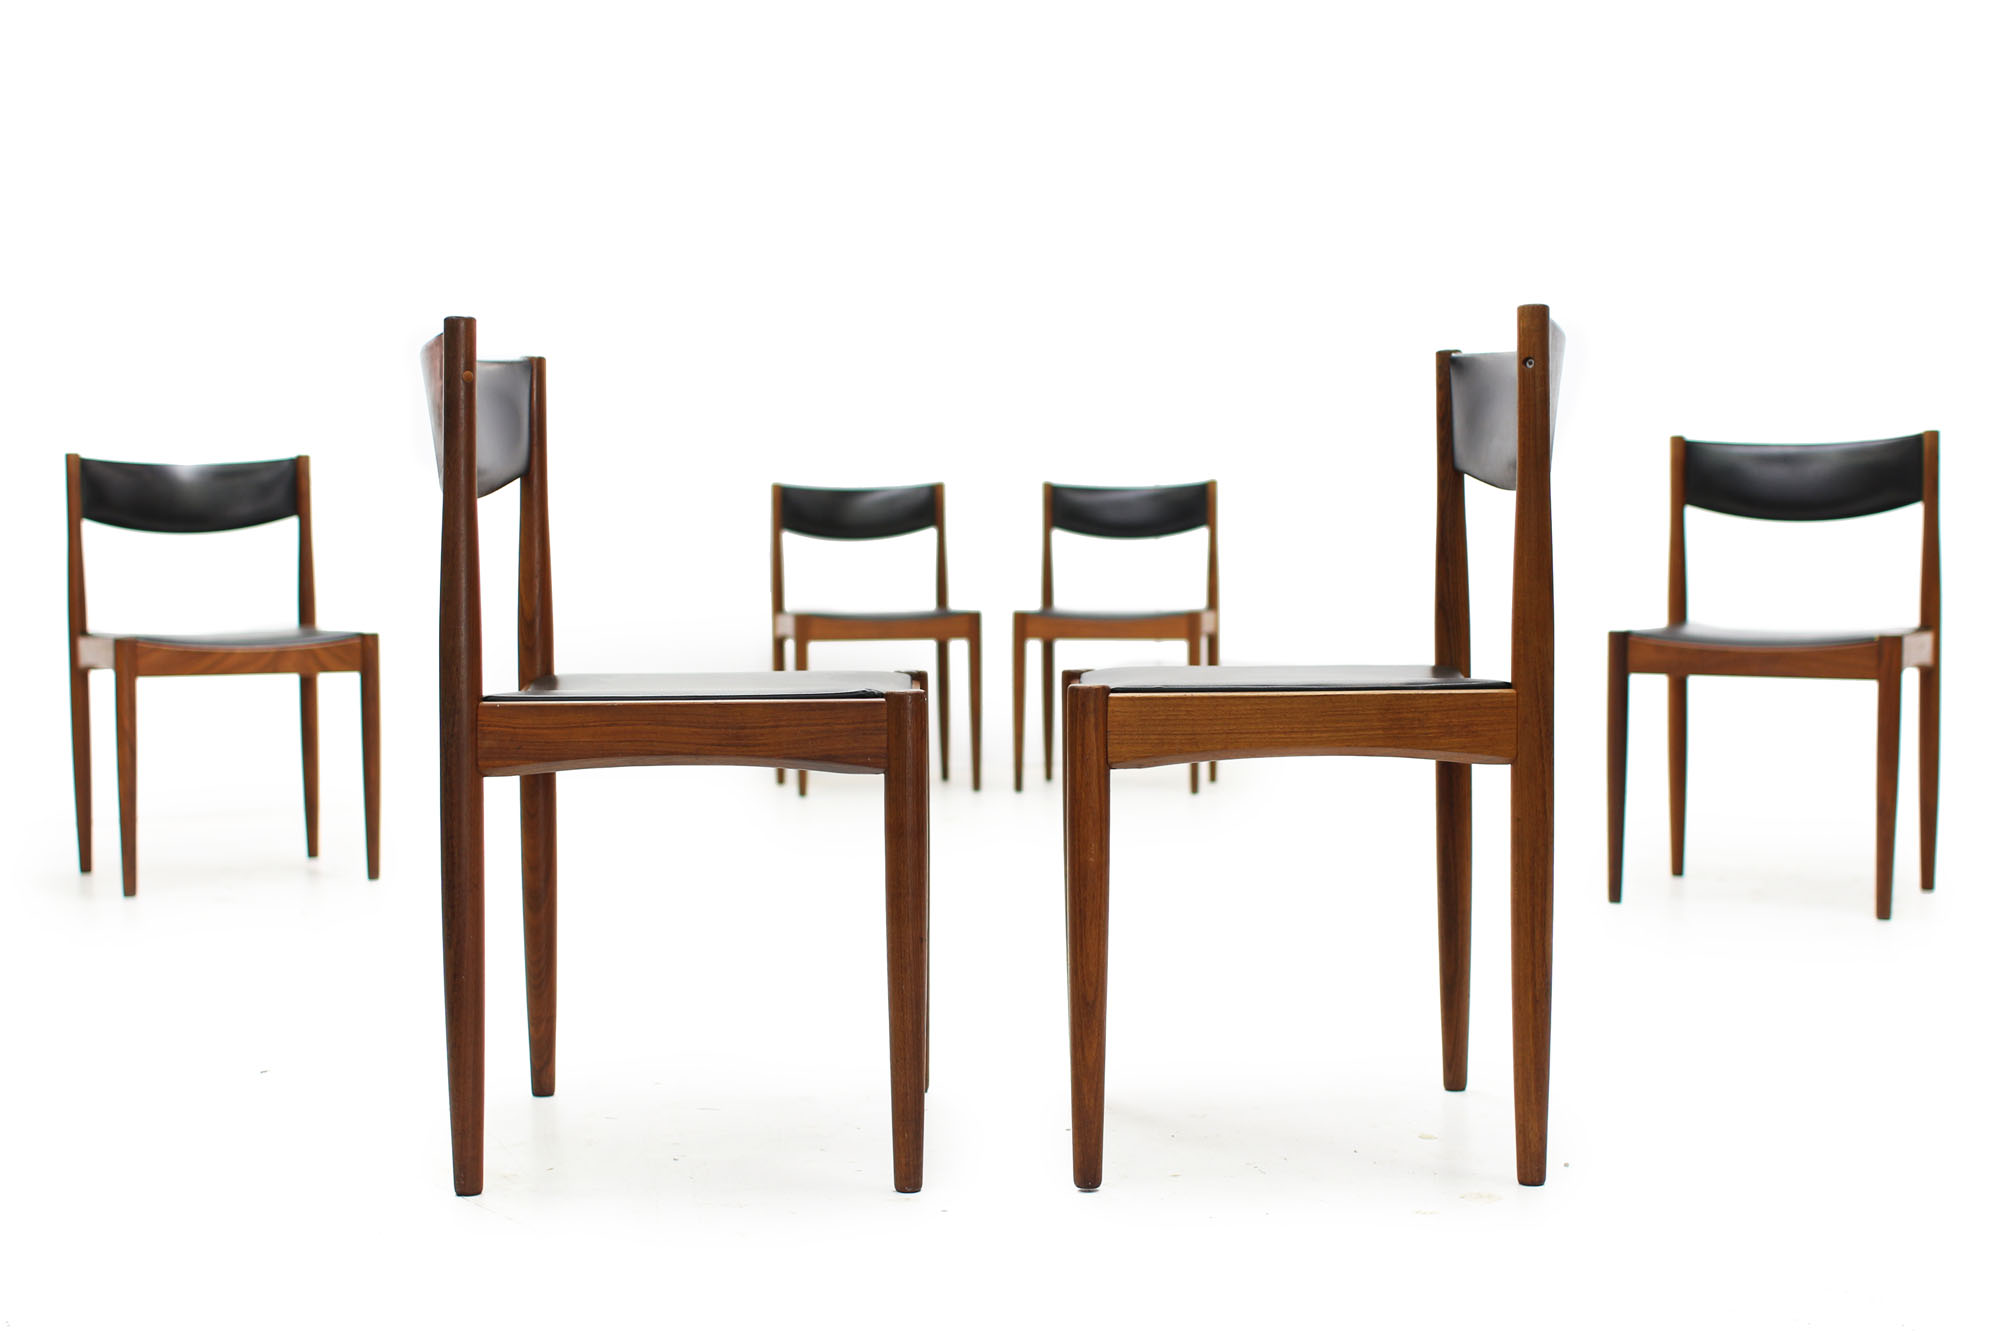 Set of 6 Mid Century Teak Dining Chairs designed by Poul Volther Made in Denmark (6).jpg